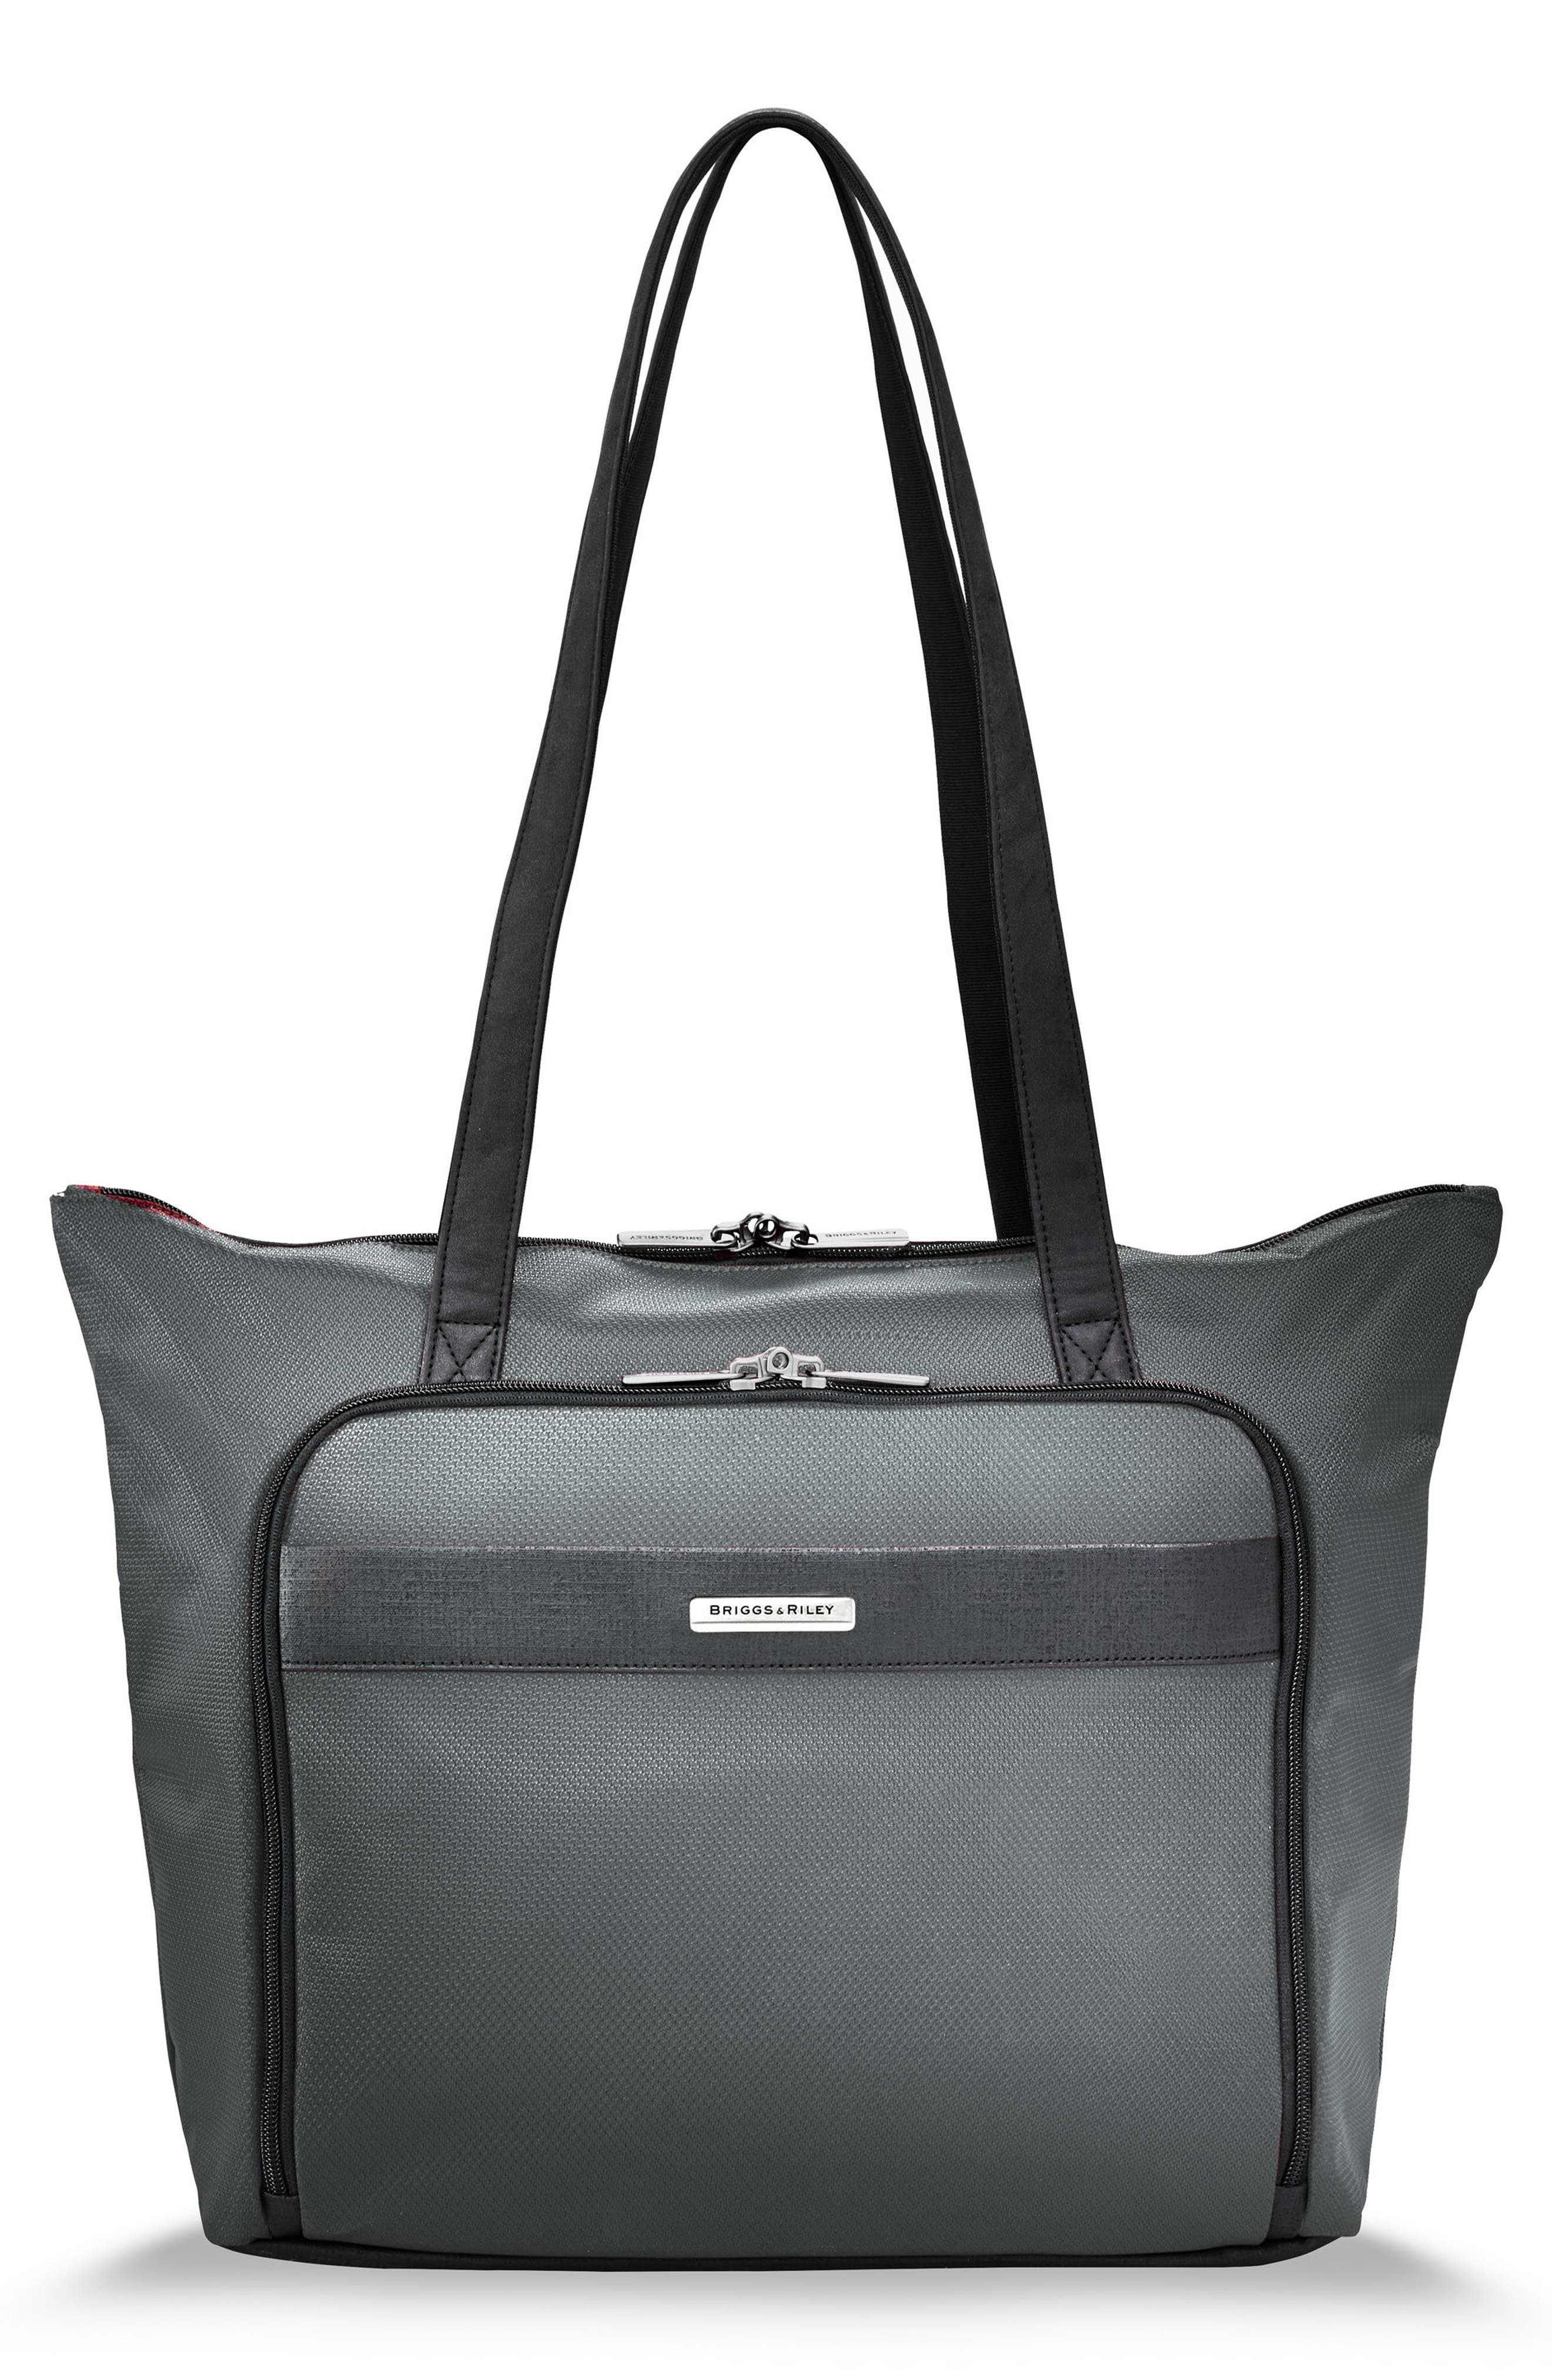 BRIGGS & RILEY Transcend 400 Tote Bag, Main, color, SLATE GREY